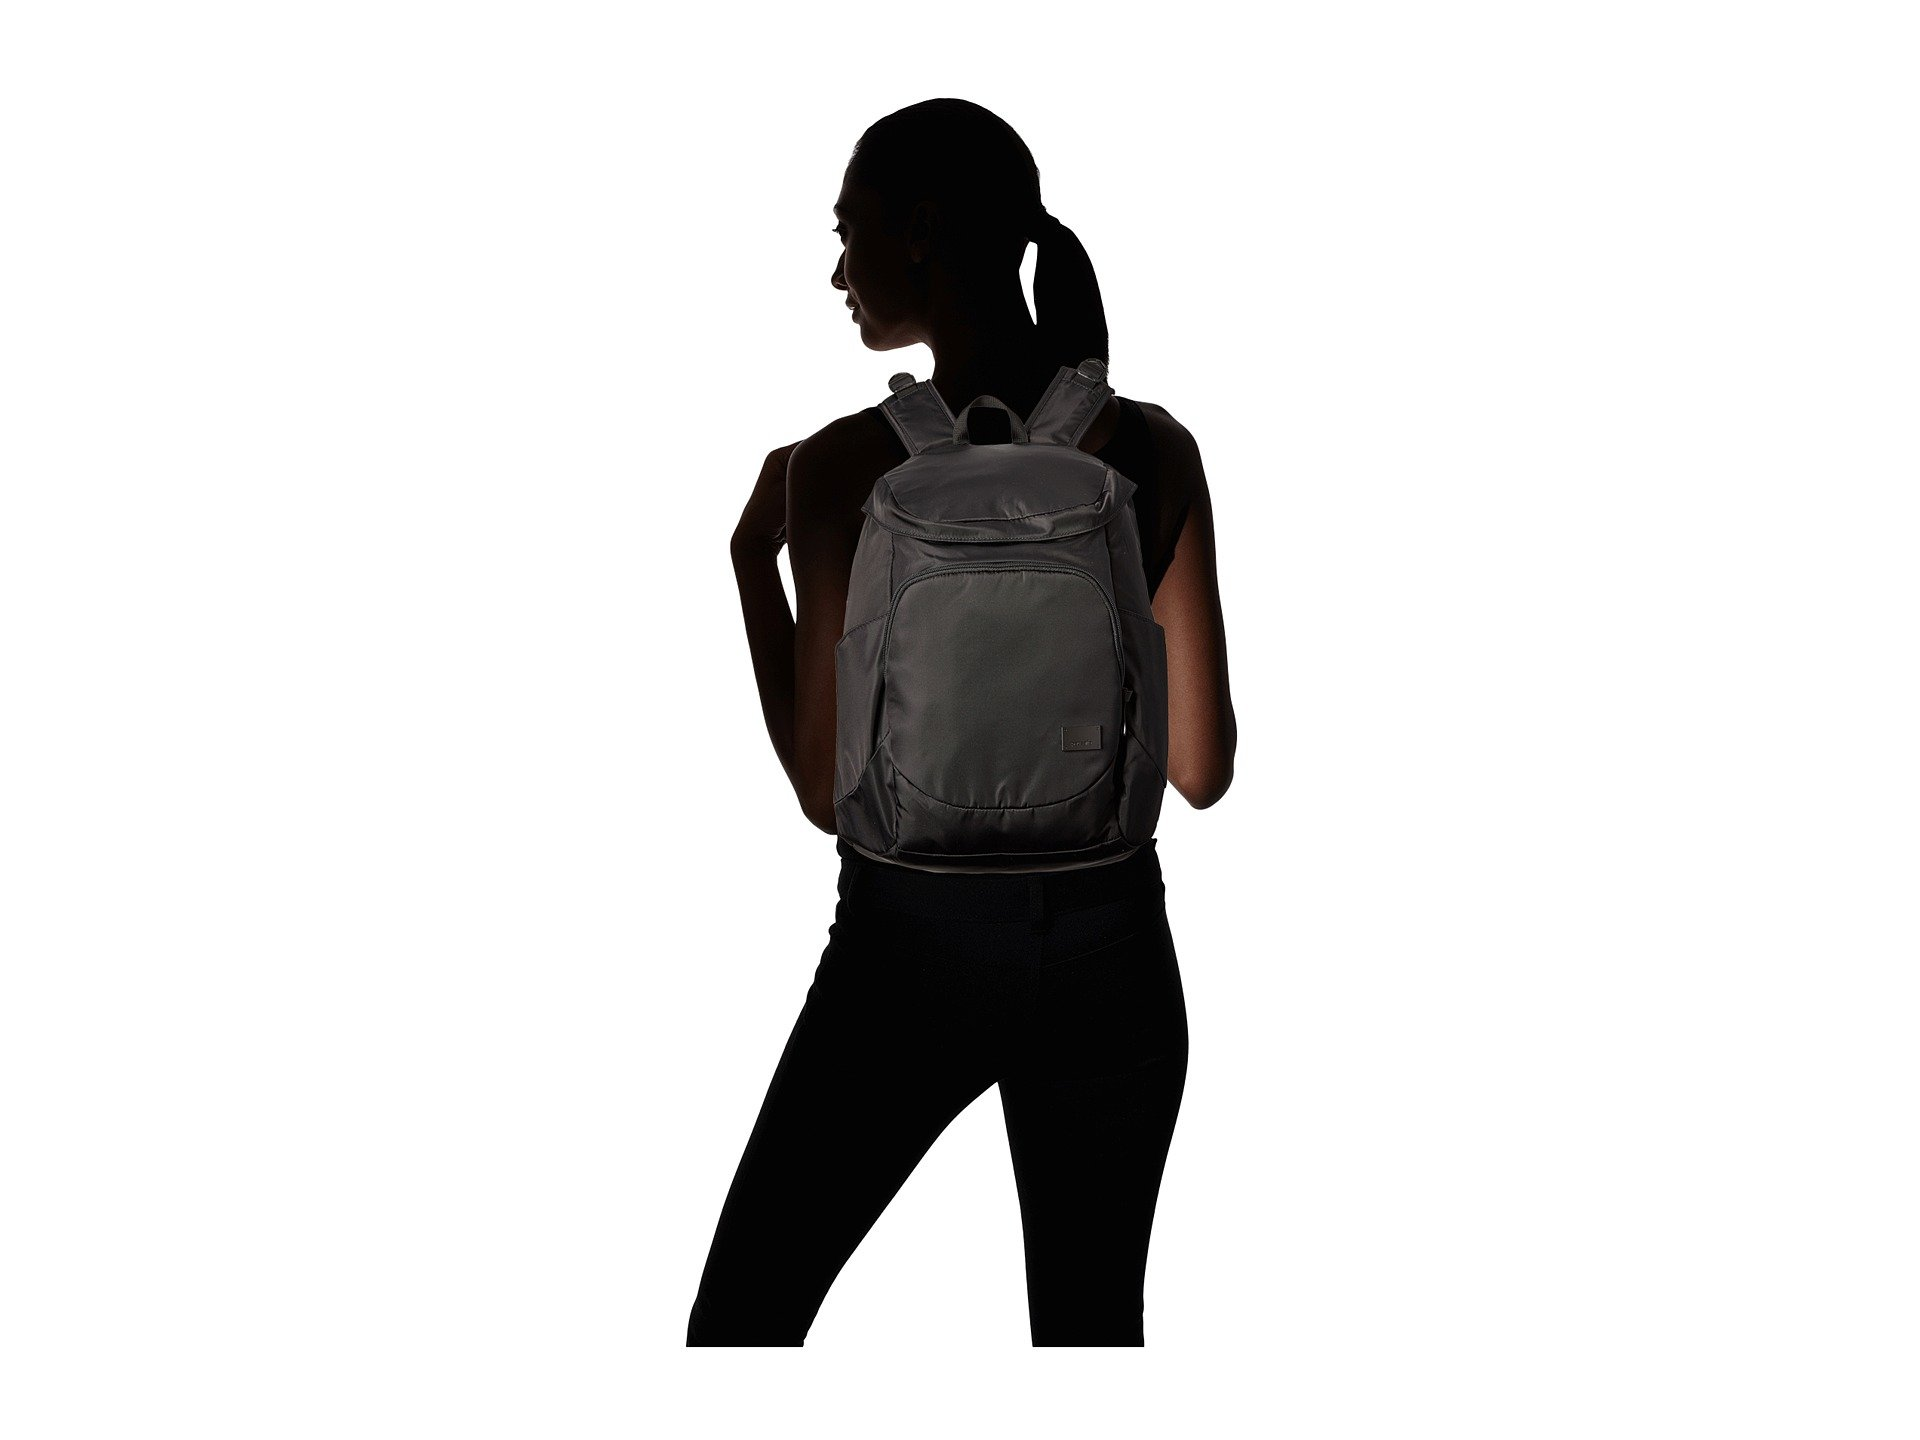 Citysafe Backpack Cs350 Cs350 Pacsafe Black Pacsafe Black Backpack Pacsafe Citysafe Citysafe qwwZExgU